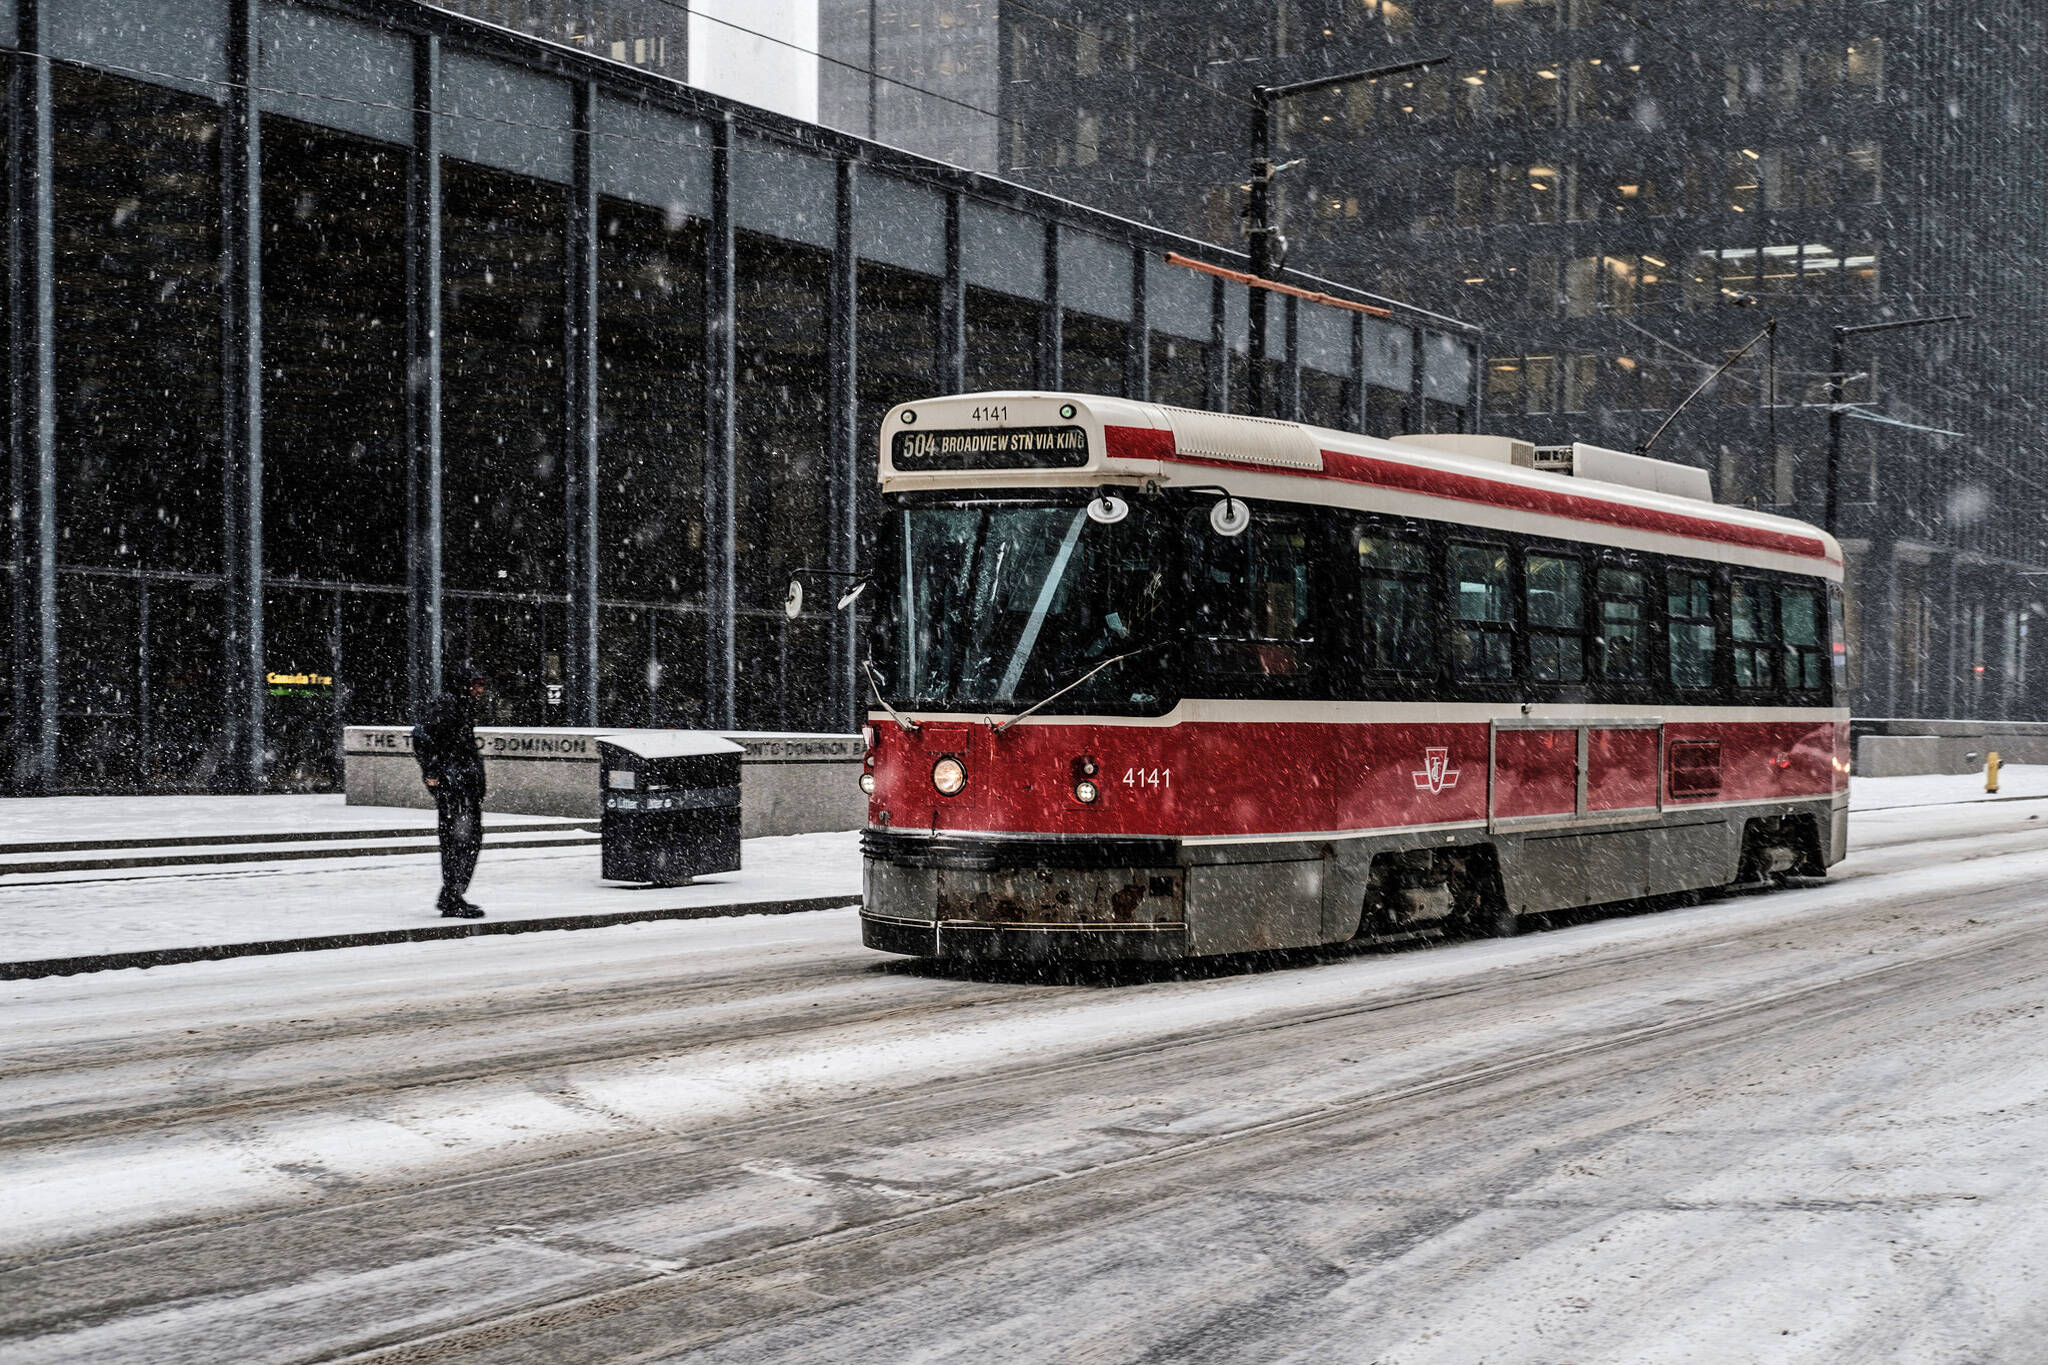 winter forecast toronto